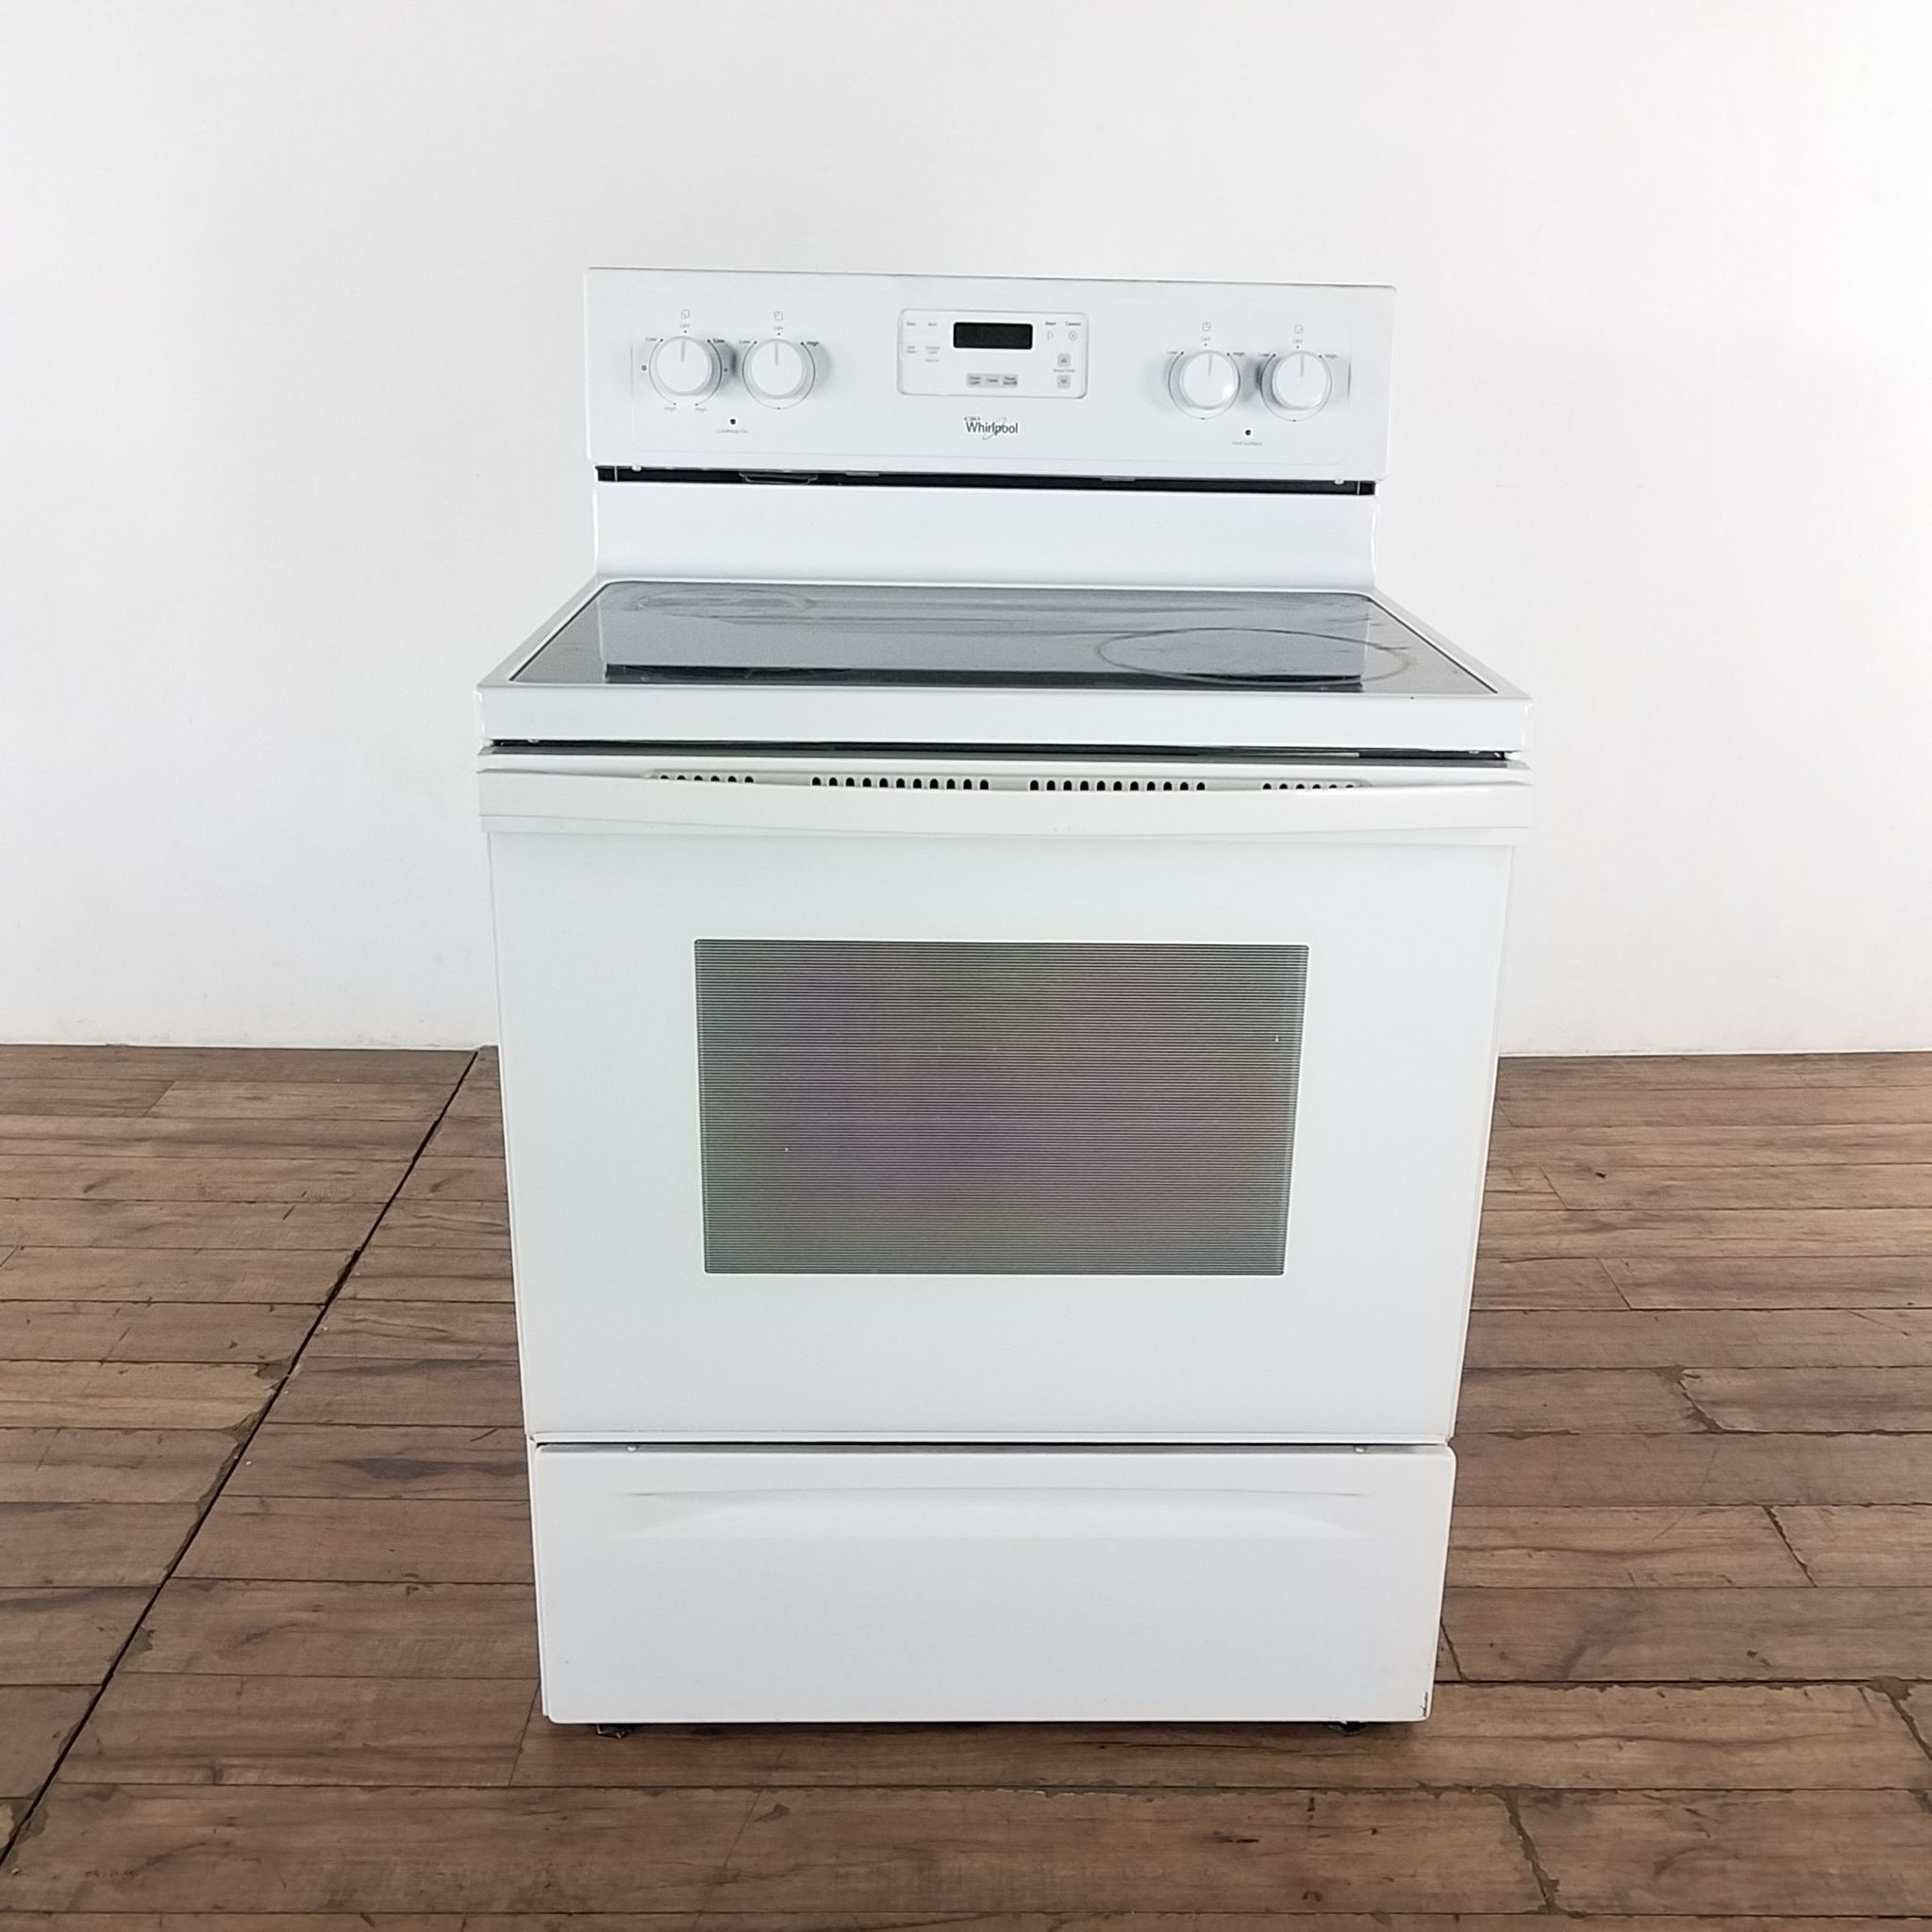 Whirlpool Glass Top Stove With Oven Glass Top Whirlpool Stove